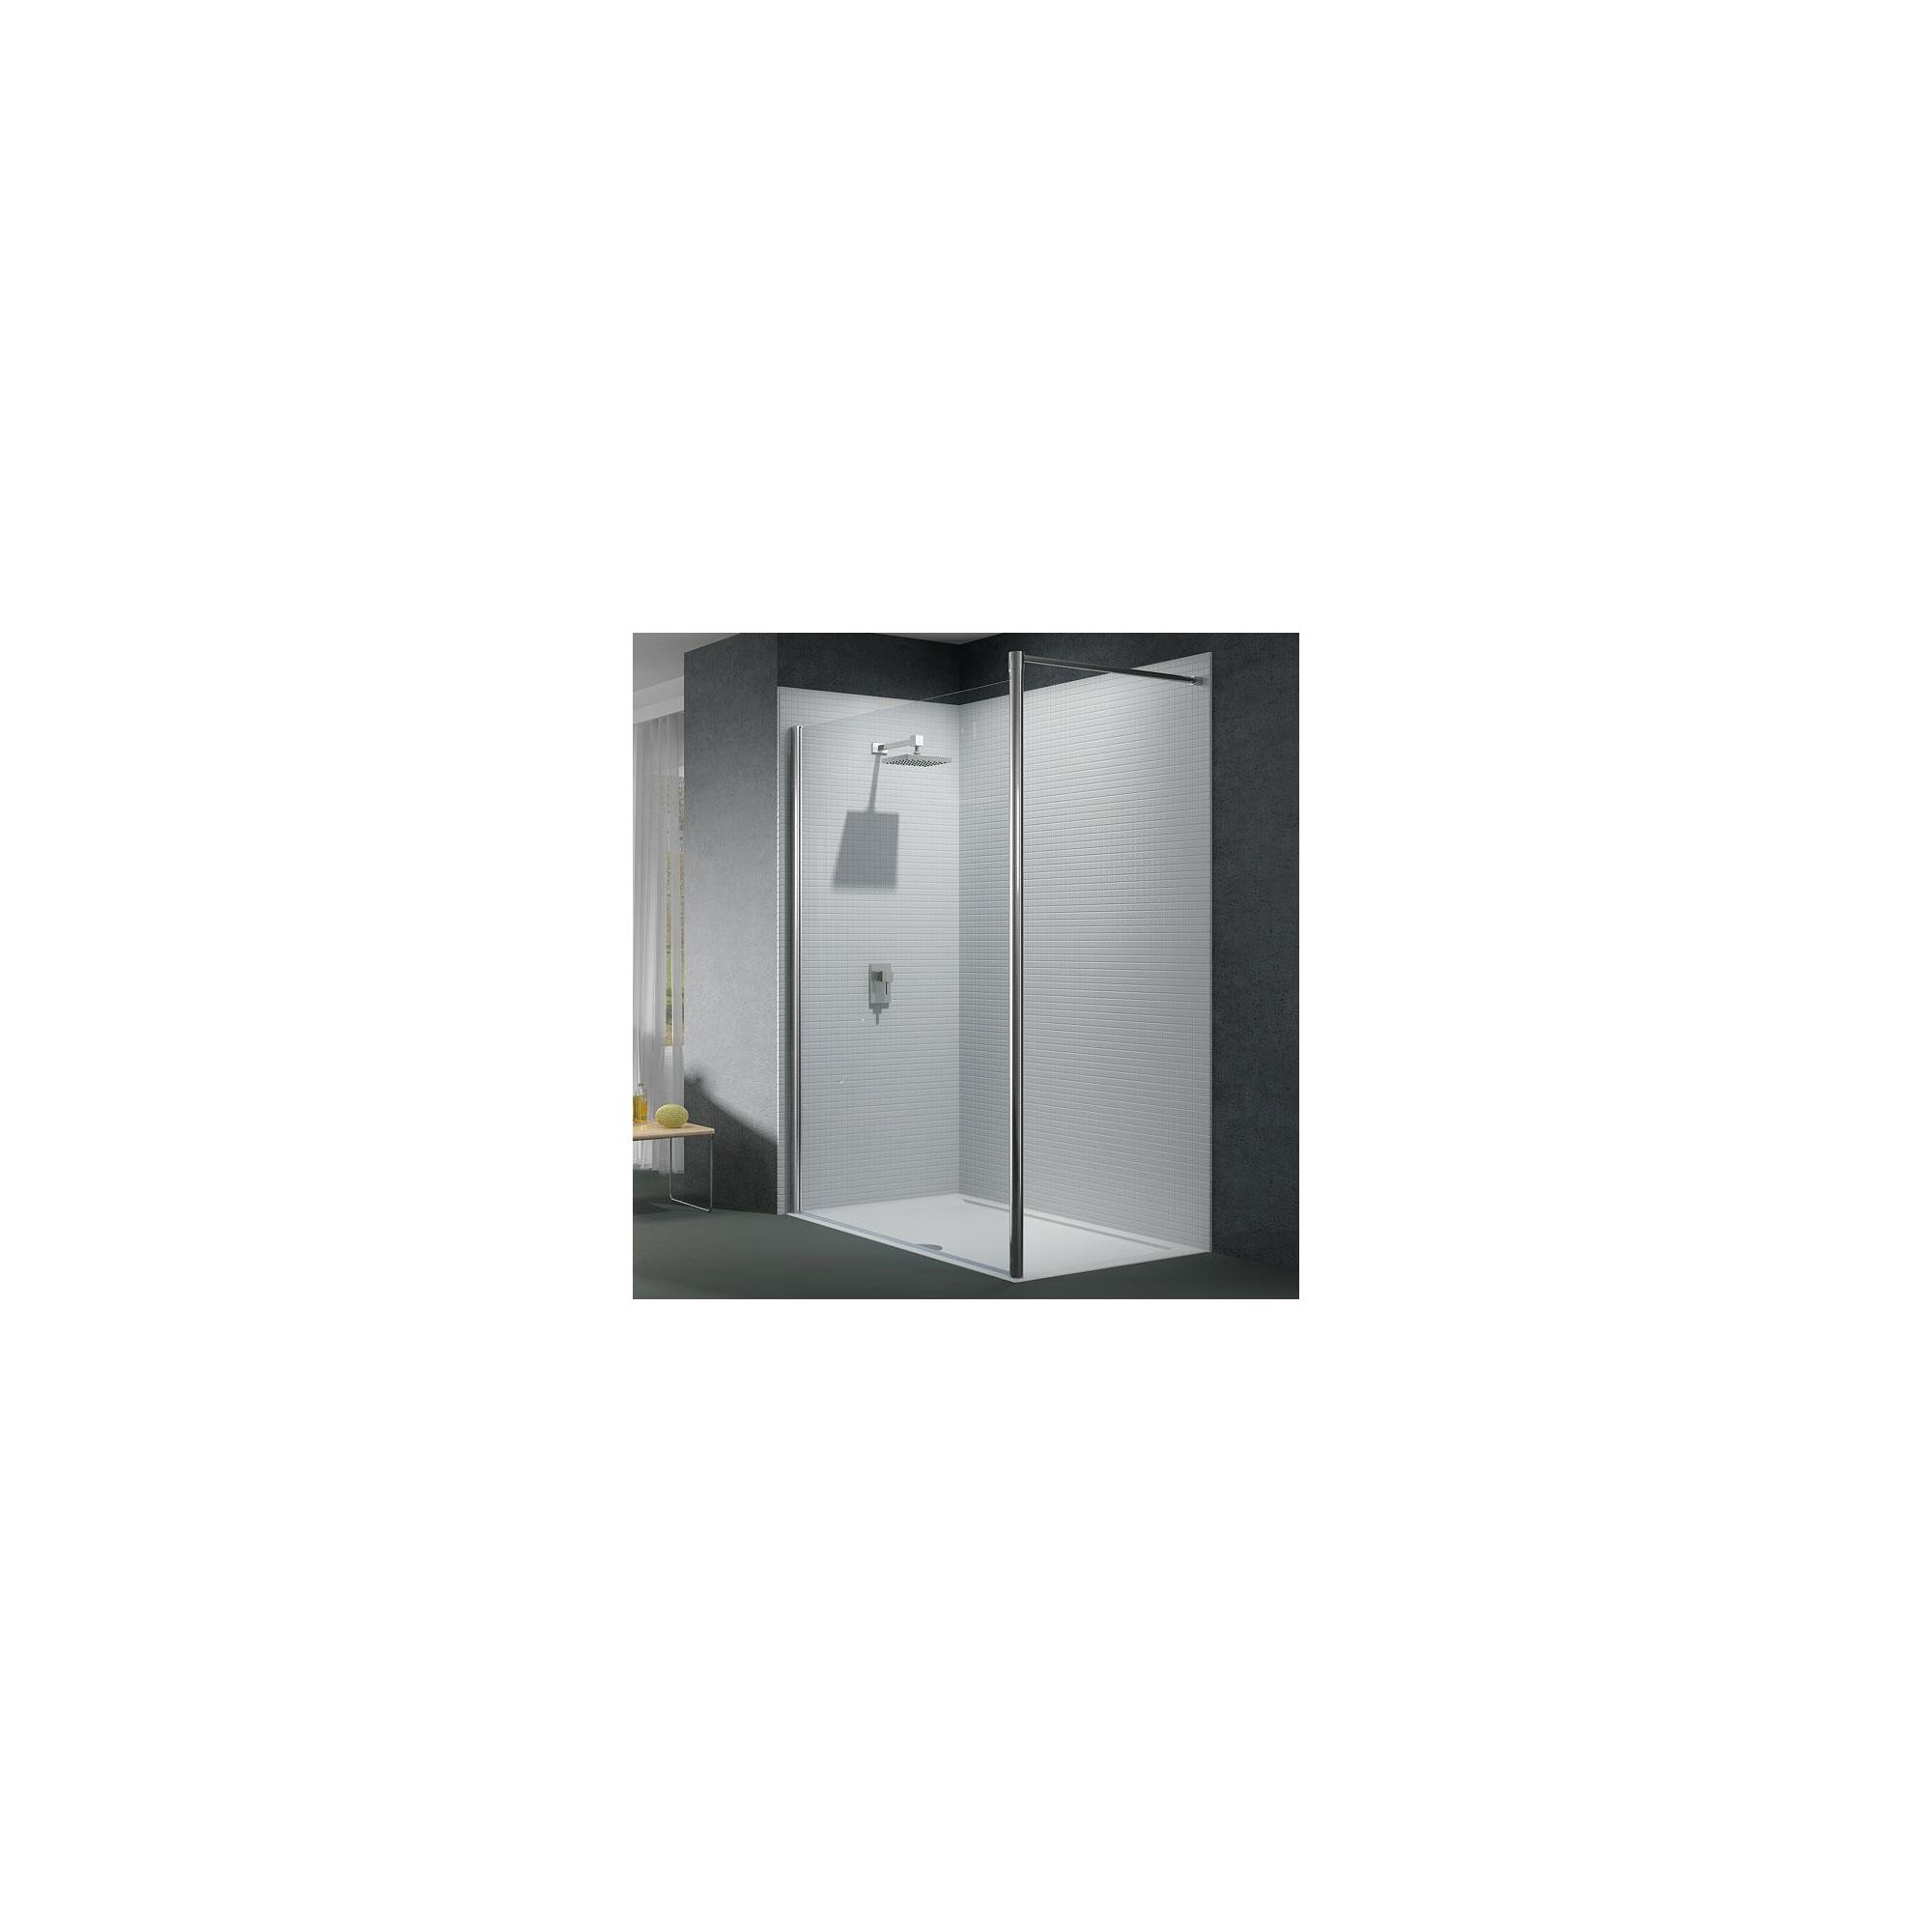 Merlyn Series 6 Wet Room Glass Shower Panel, 800mm Wide, 6mm Glass, Horizontal Support at Tesco Direct